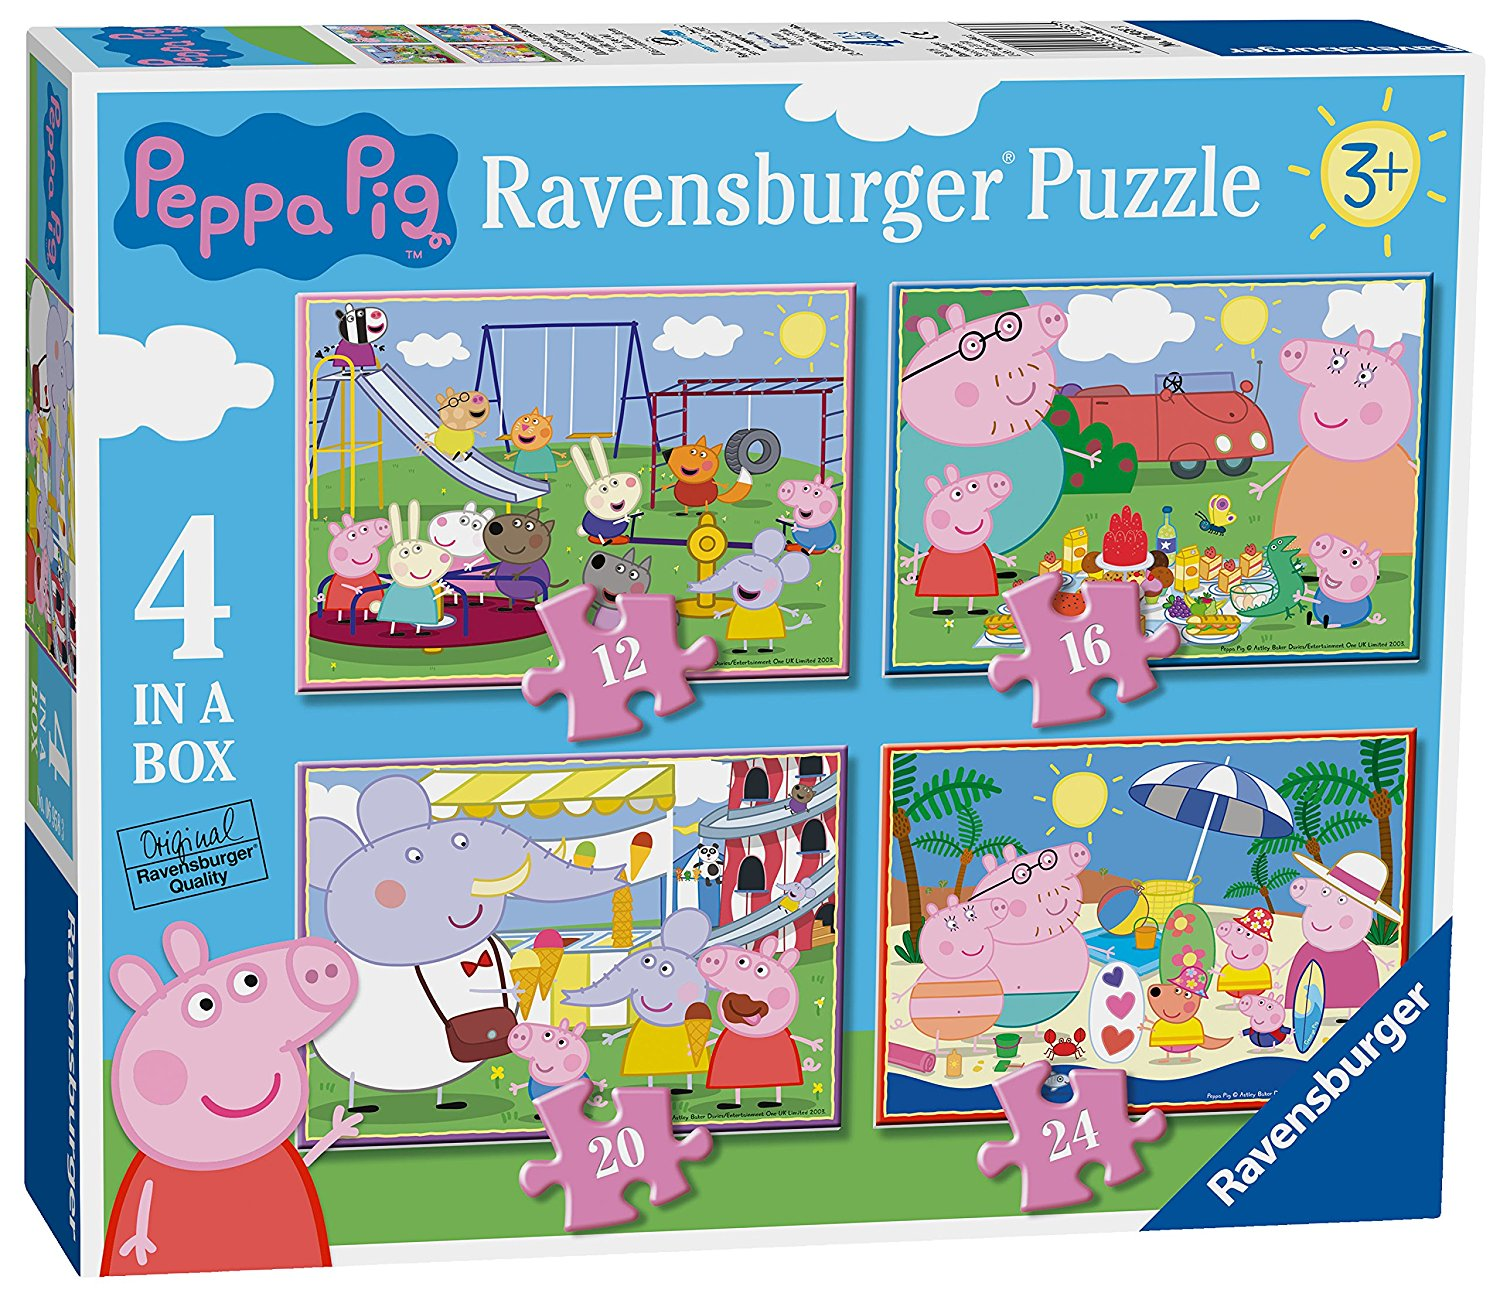 Peppa Pig 4 in Box, 12pc, 16pc, 20pc & 24pc